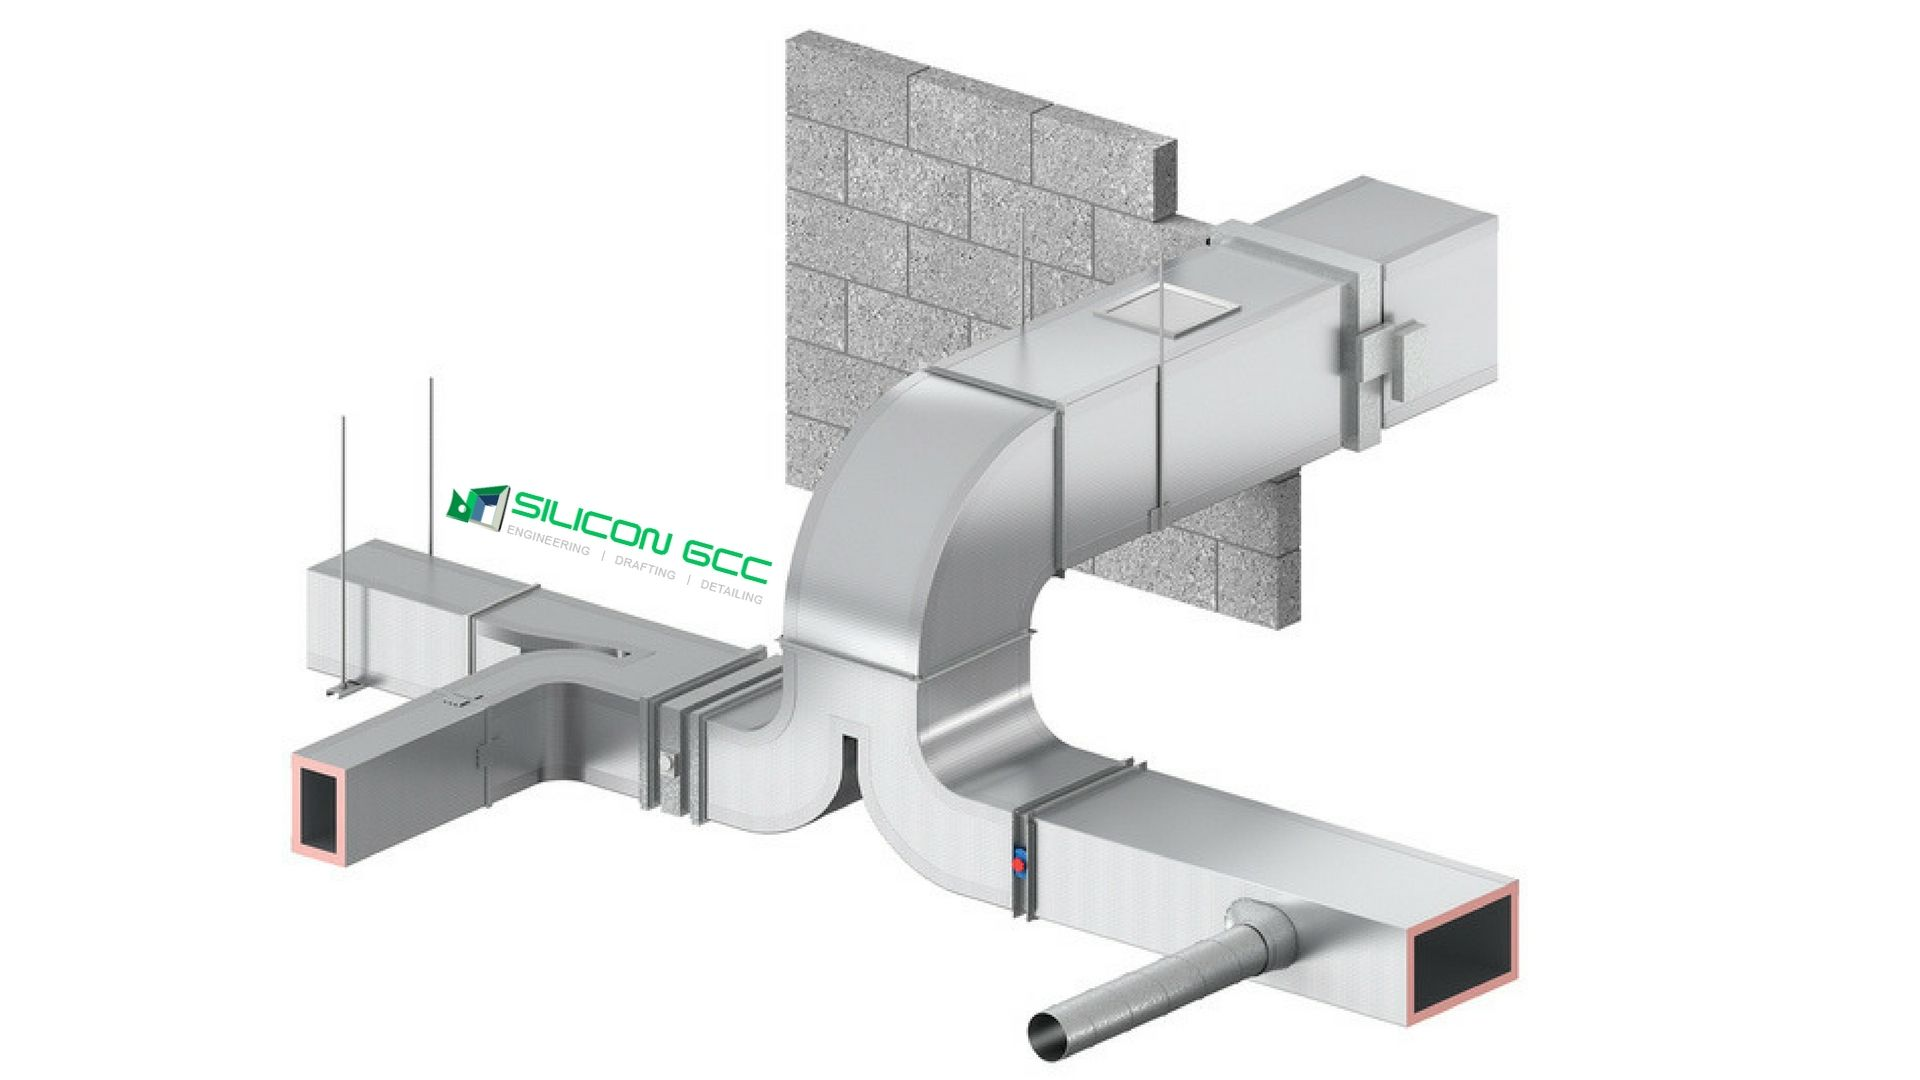 medium resolution of hvac duct components incorporate programmed drawing of extensive rectangular and circular duct fittings fire dampers flex ducts control dampers and